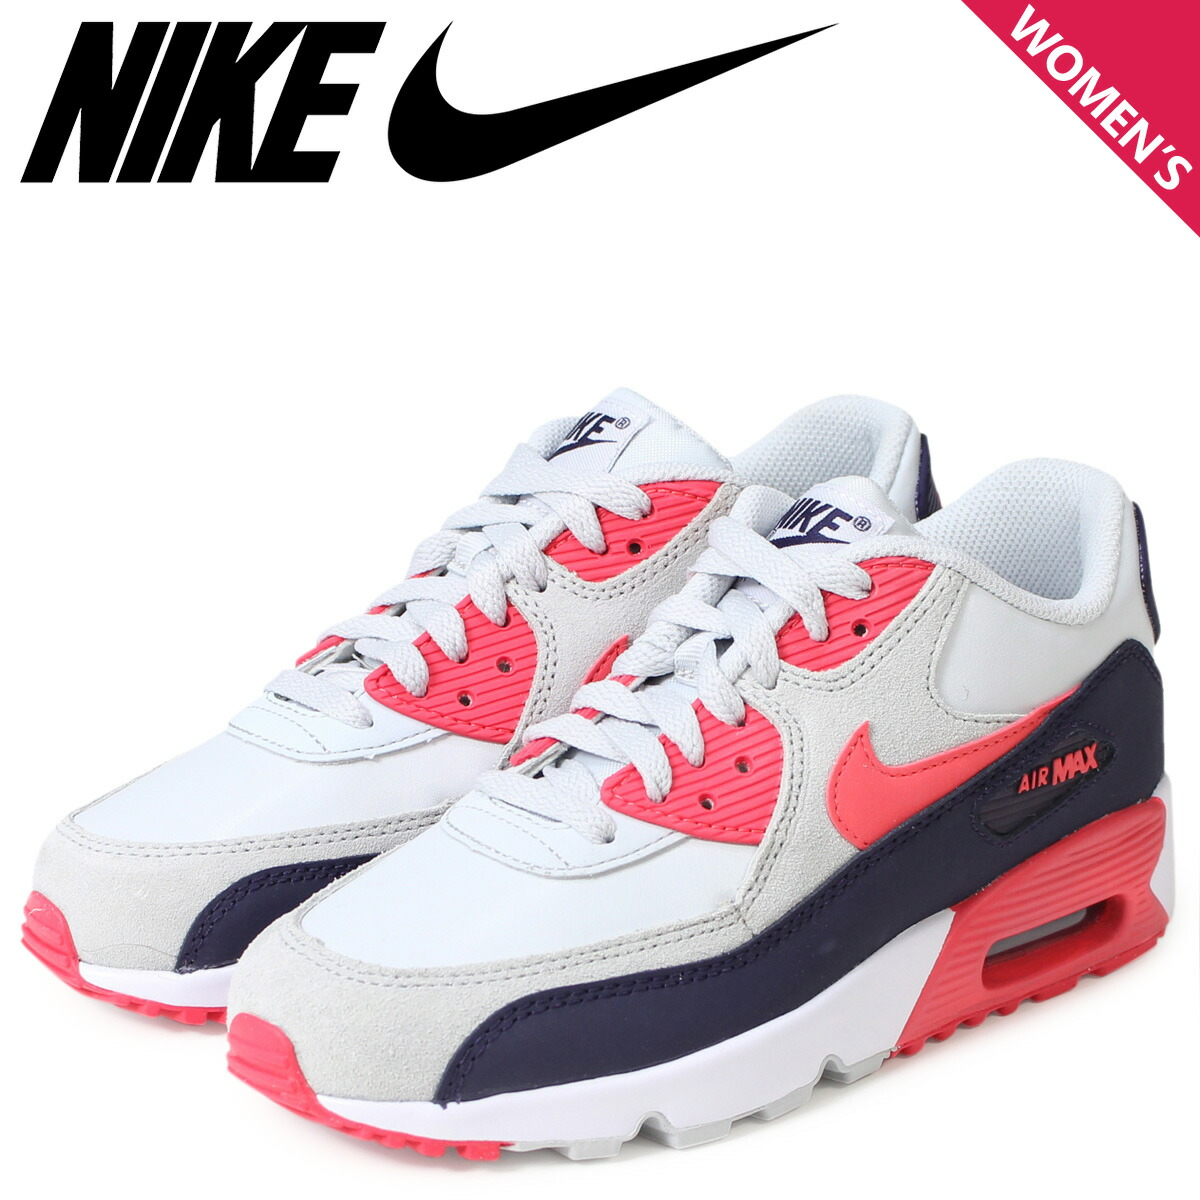 nike air max snapdeal